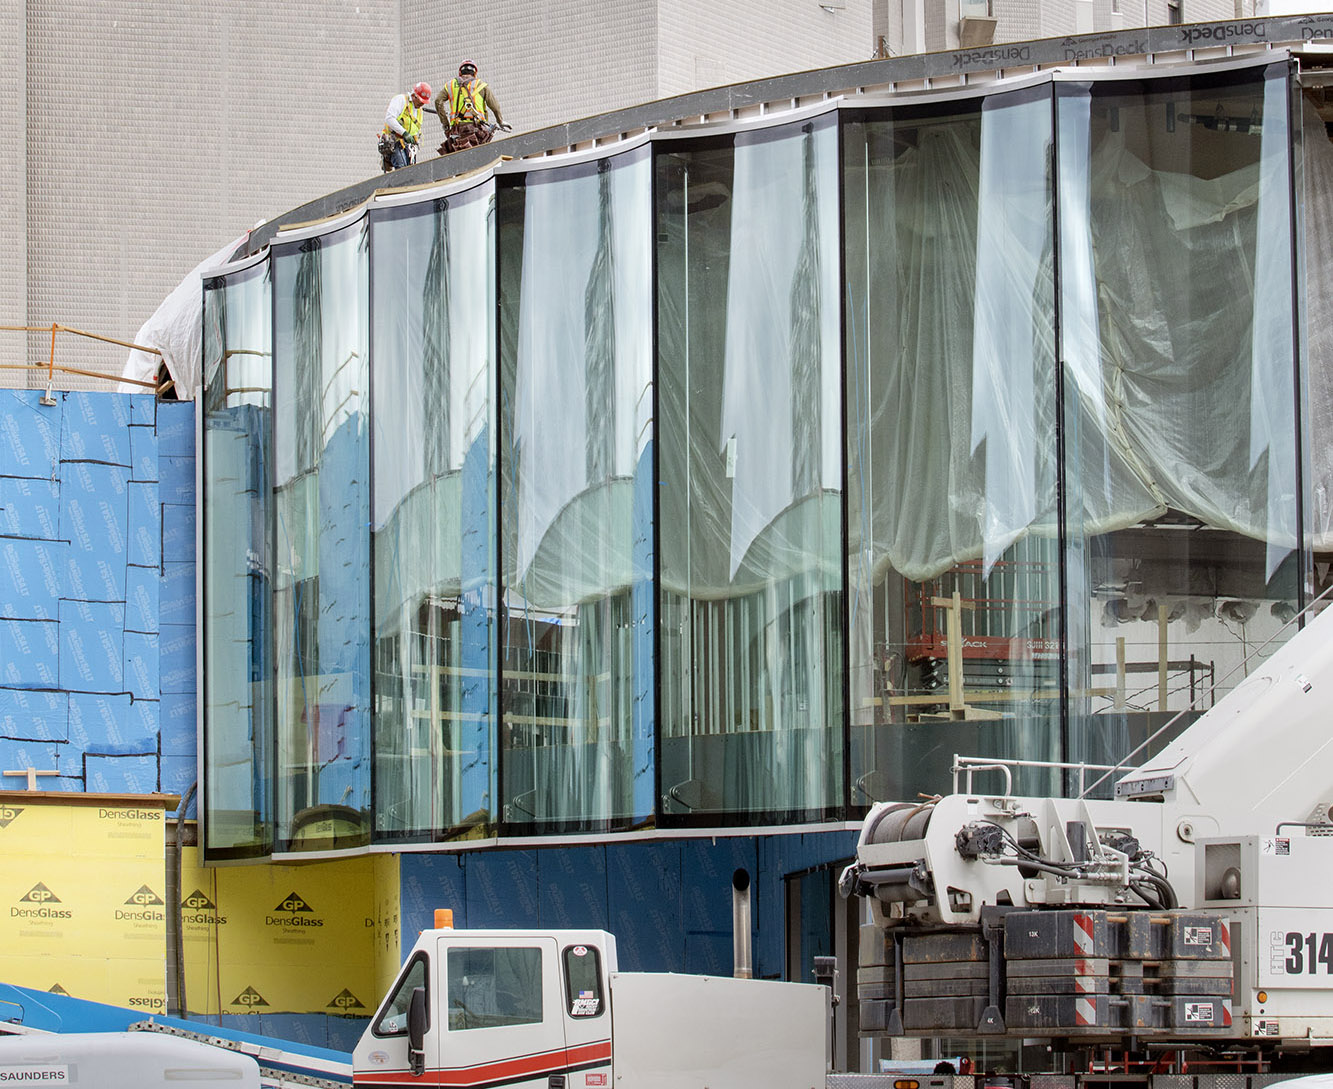 Construction image of the Denver Art Museum